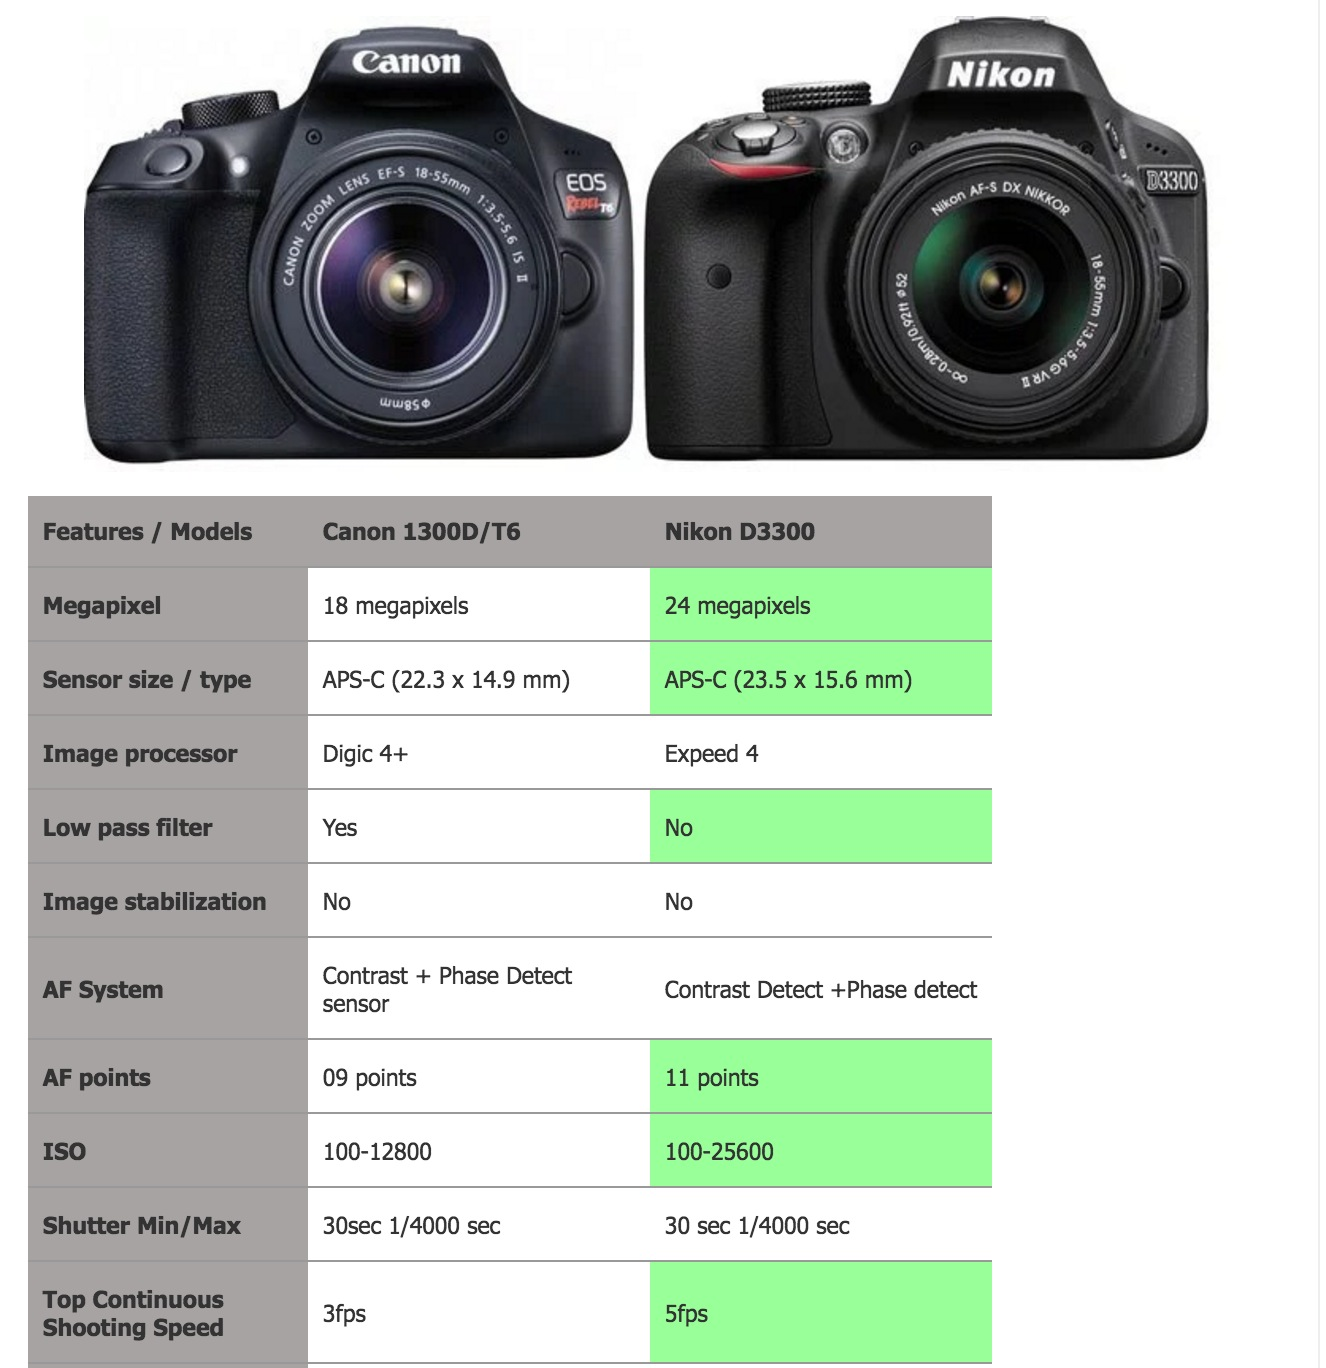 Canon 1300D Vs Nikon 3300D - Which one is better entry level DSLR?